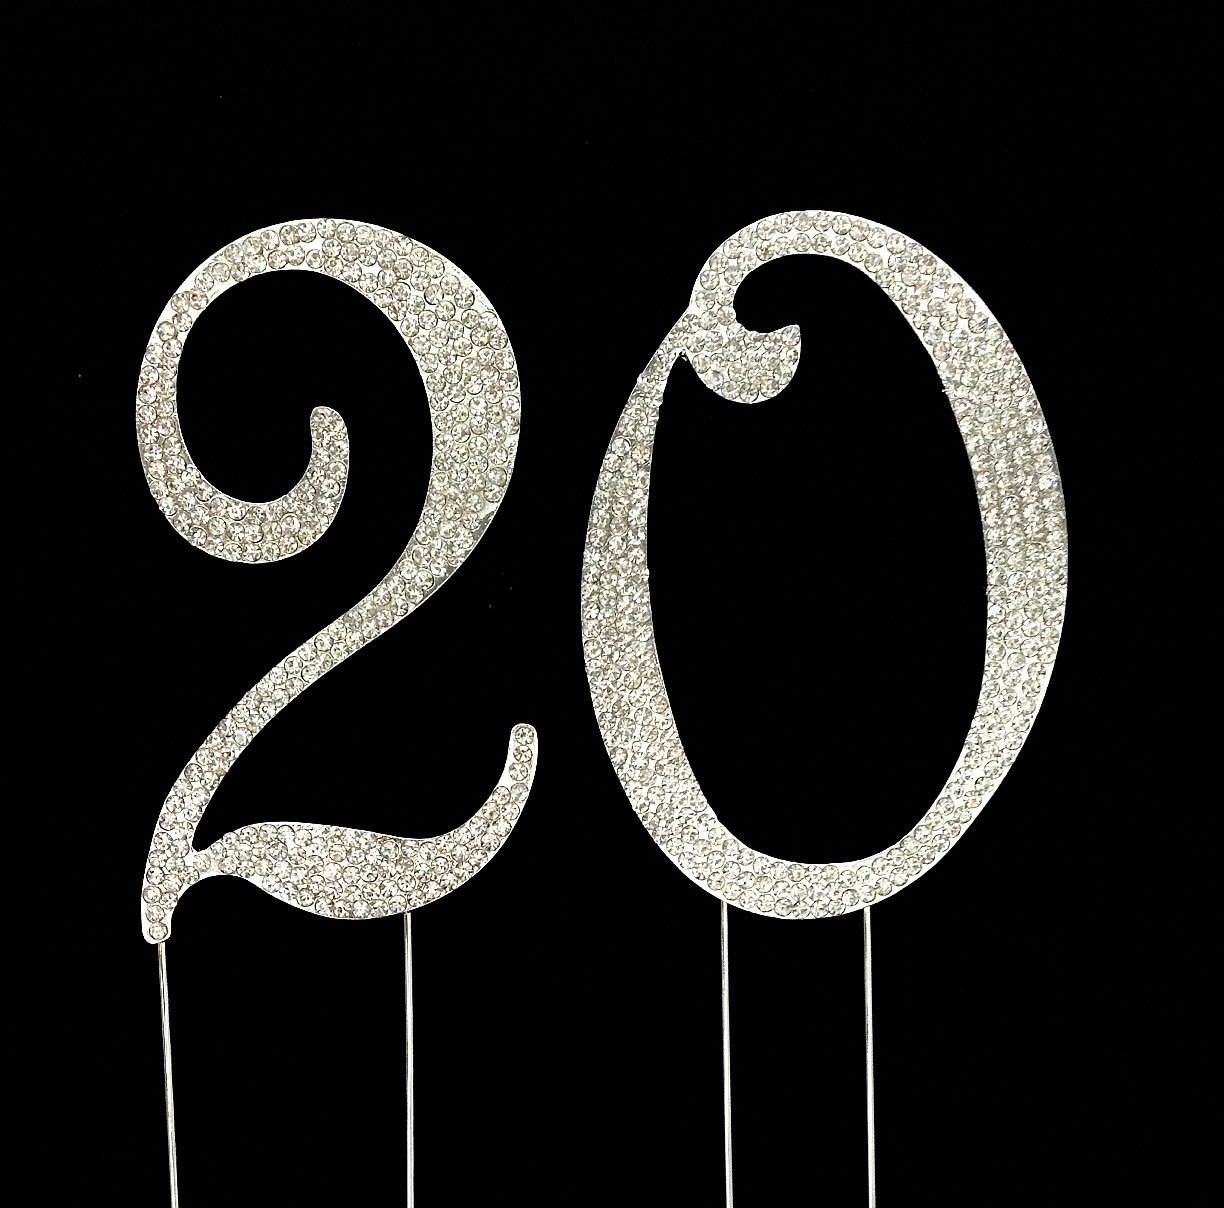 Amazoncom Number 20 for 20th Birthday or Anniversary Cake Topper